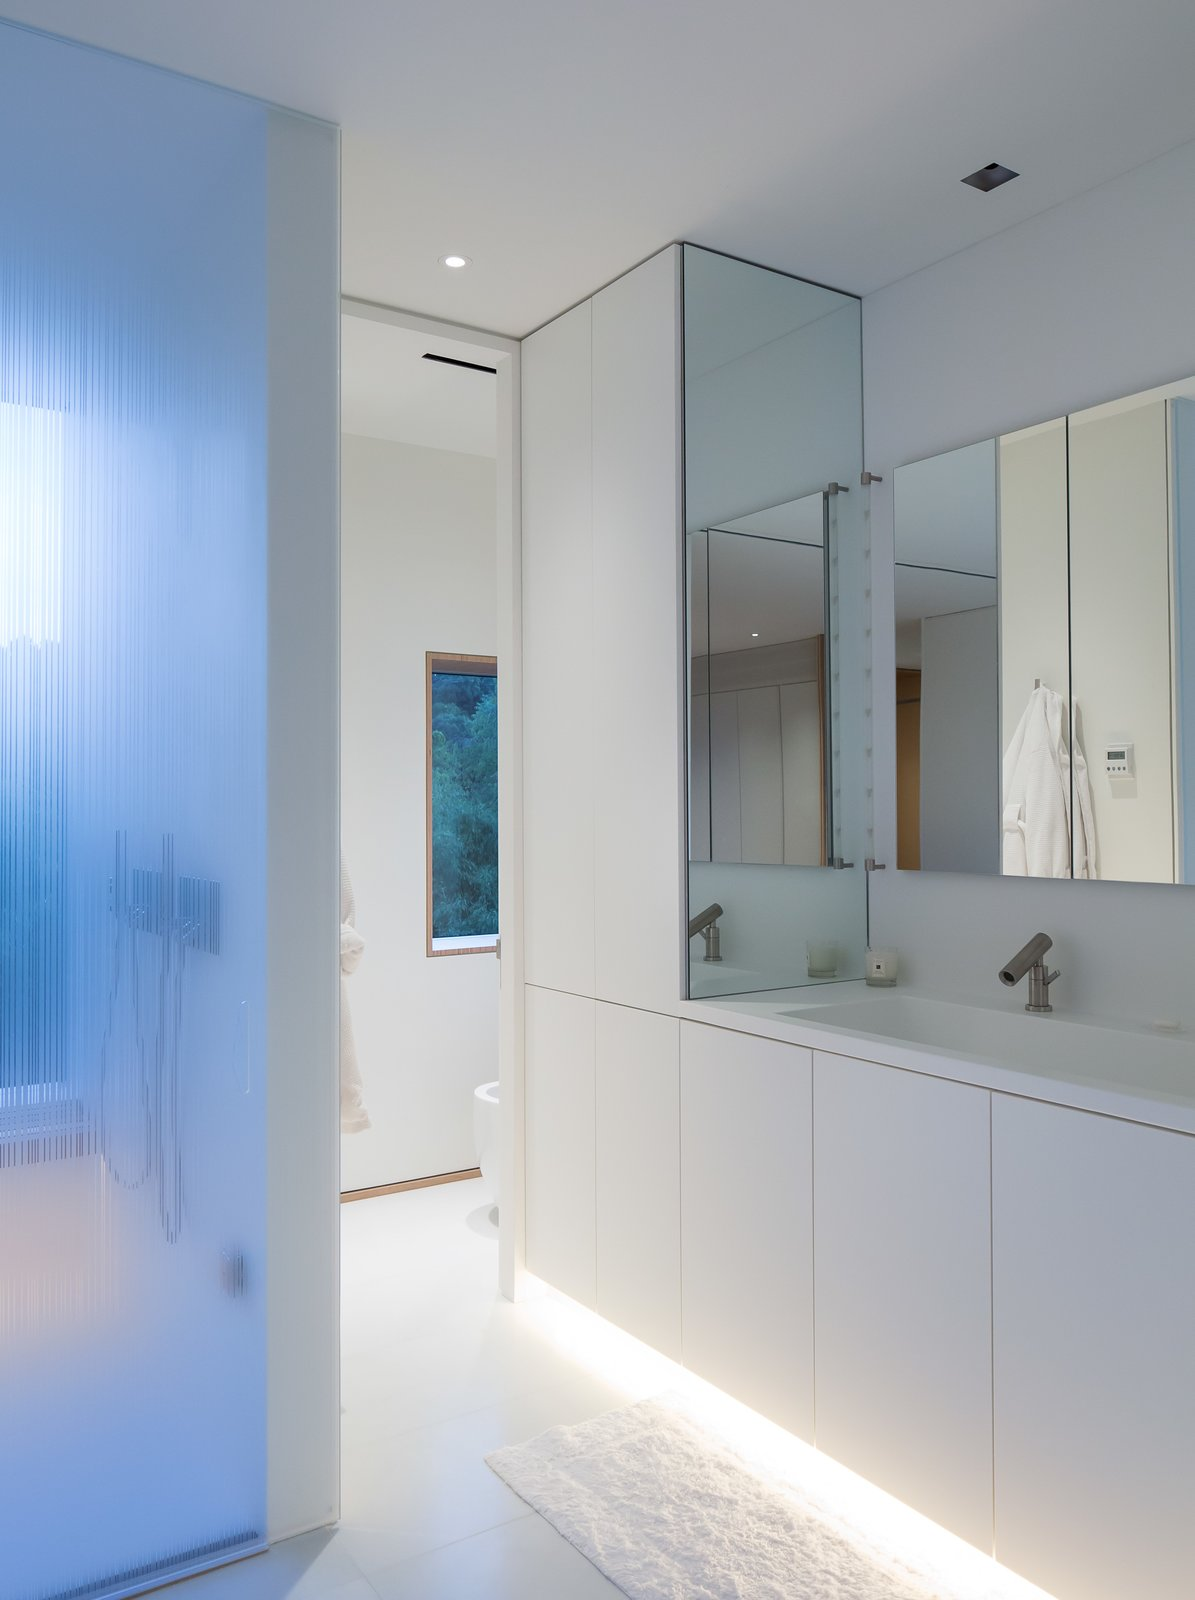 The capacious master suite includes a bathroom with a glass-enclosed shower, under-lit cabinetry, and a box window that looks south toward the garden and pool. The shower fixture and faucet are by Agape. Organic, undulating forms frame the stairwell that connects the first floor and garden floor.